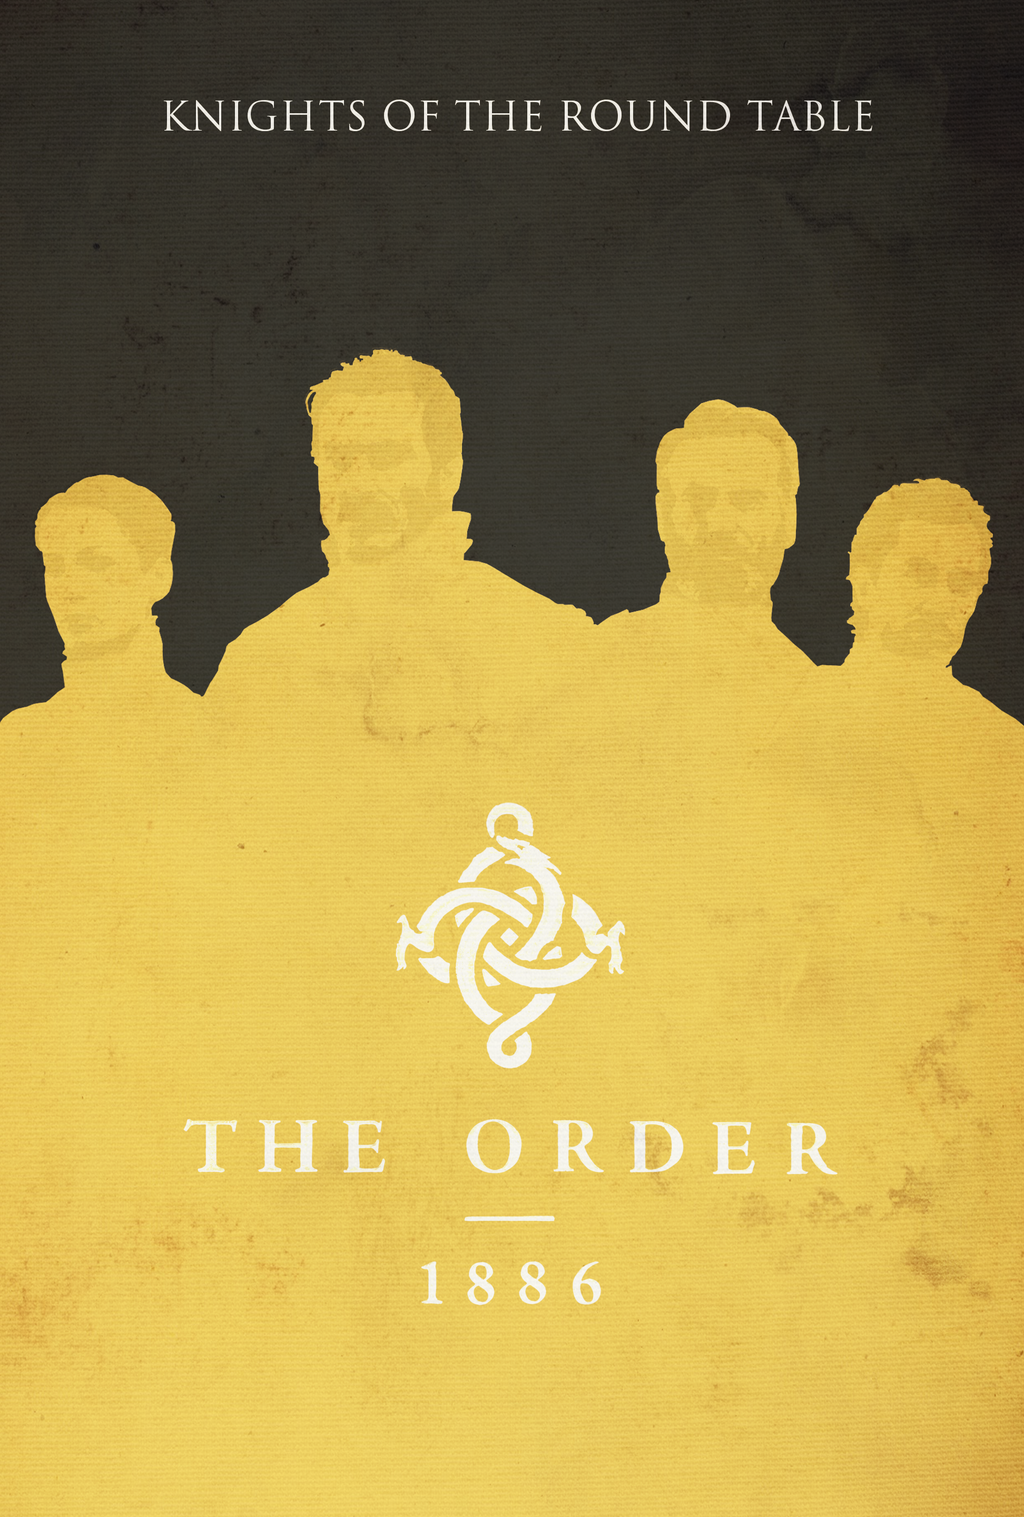 The order 1886 knights of the round table by shrimpy99 for 10 knights of the round table